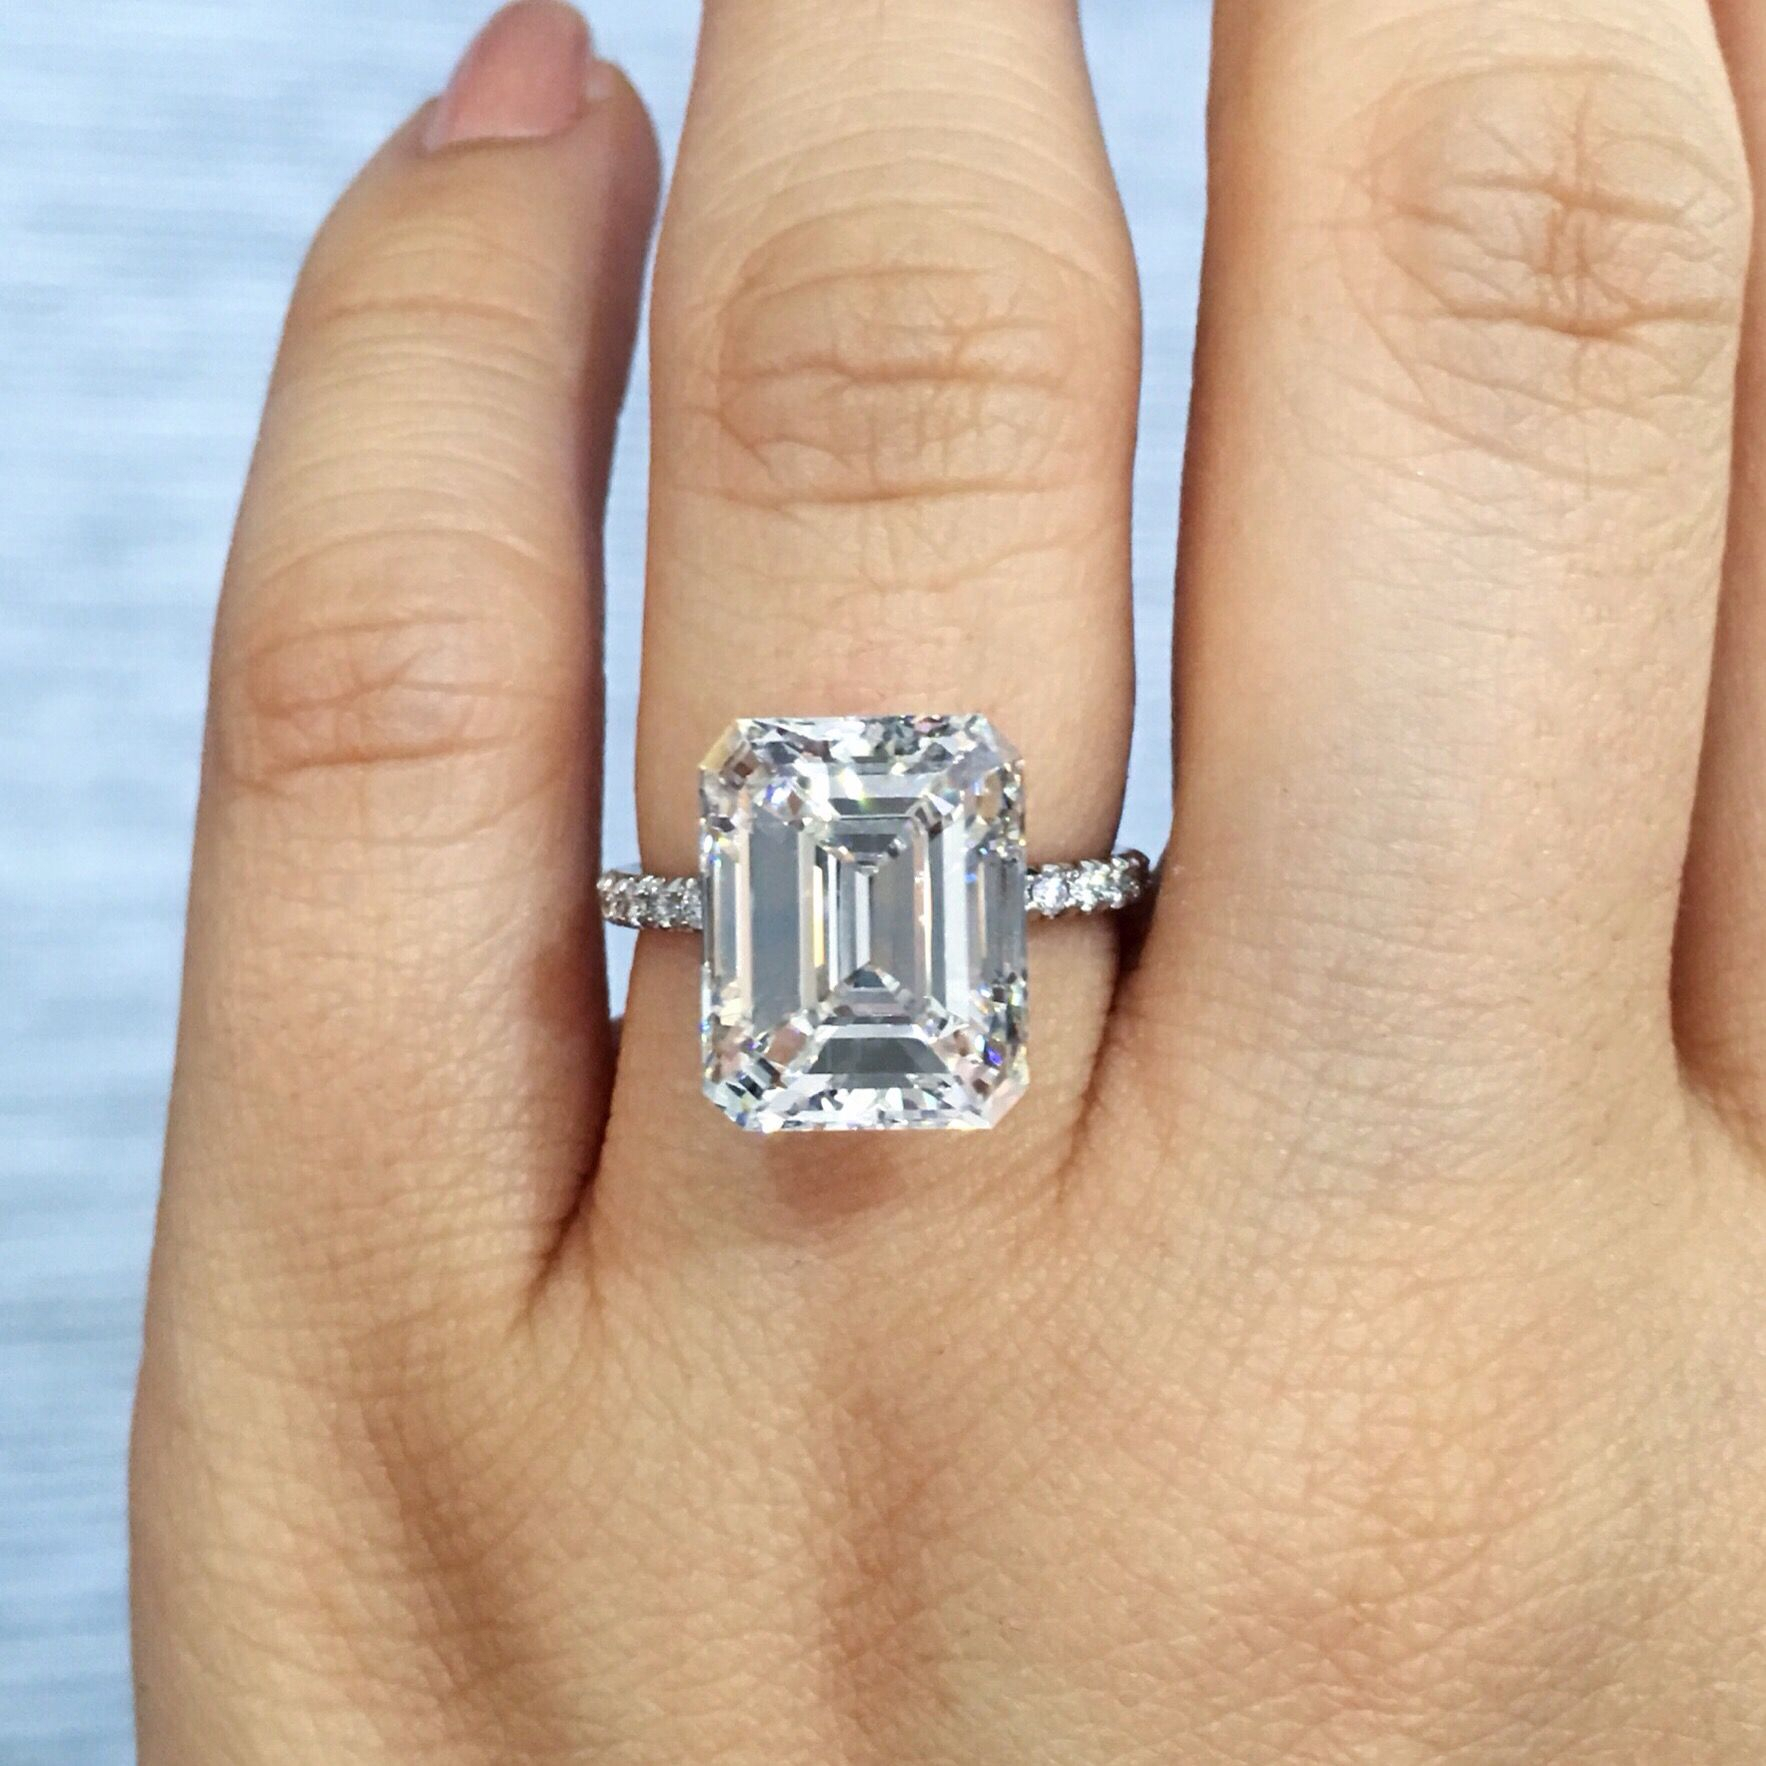 Pin On My Ring Regarding Solitaire Emerald Cut Engagement Rings (View 8 of 25)